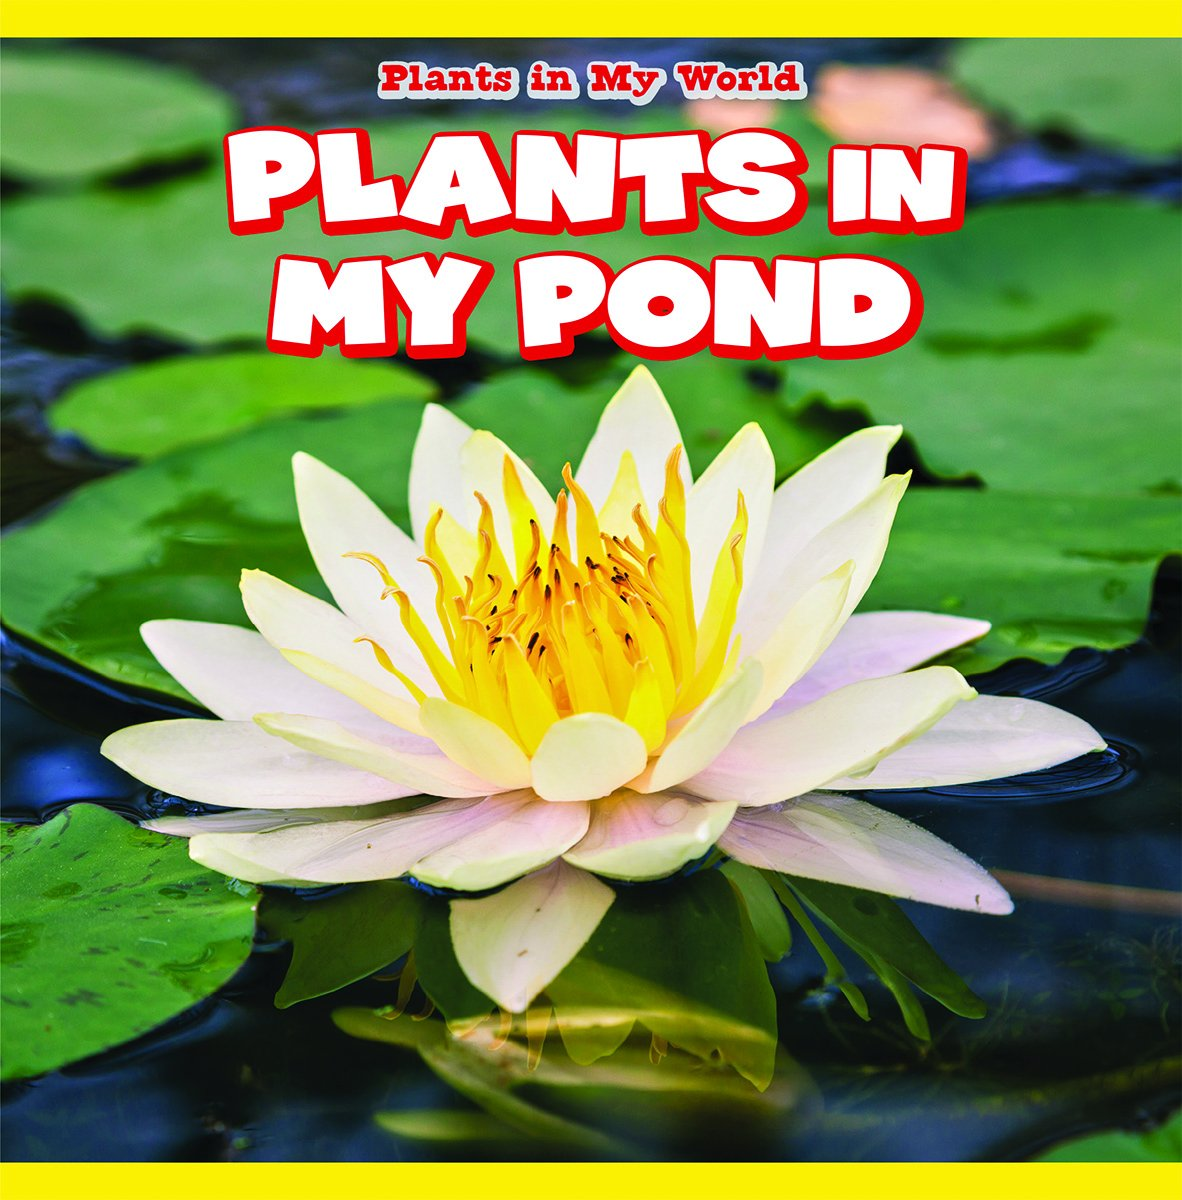 Plants in My Pond (Plants in My World)